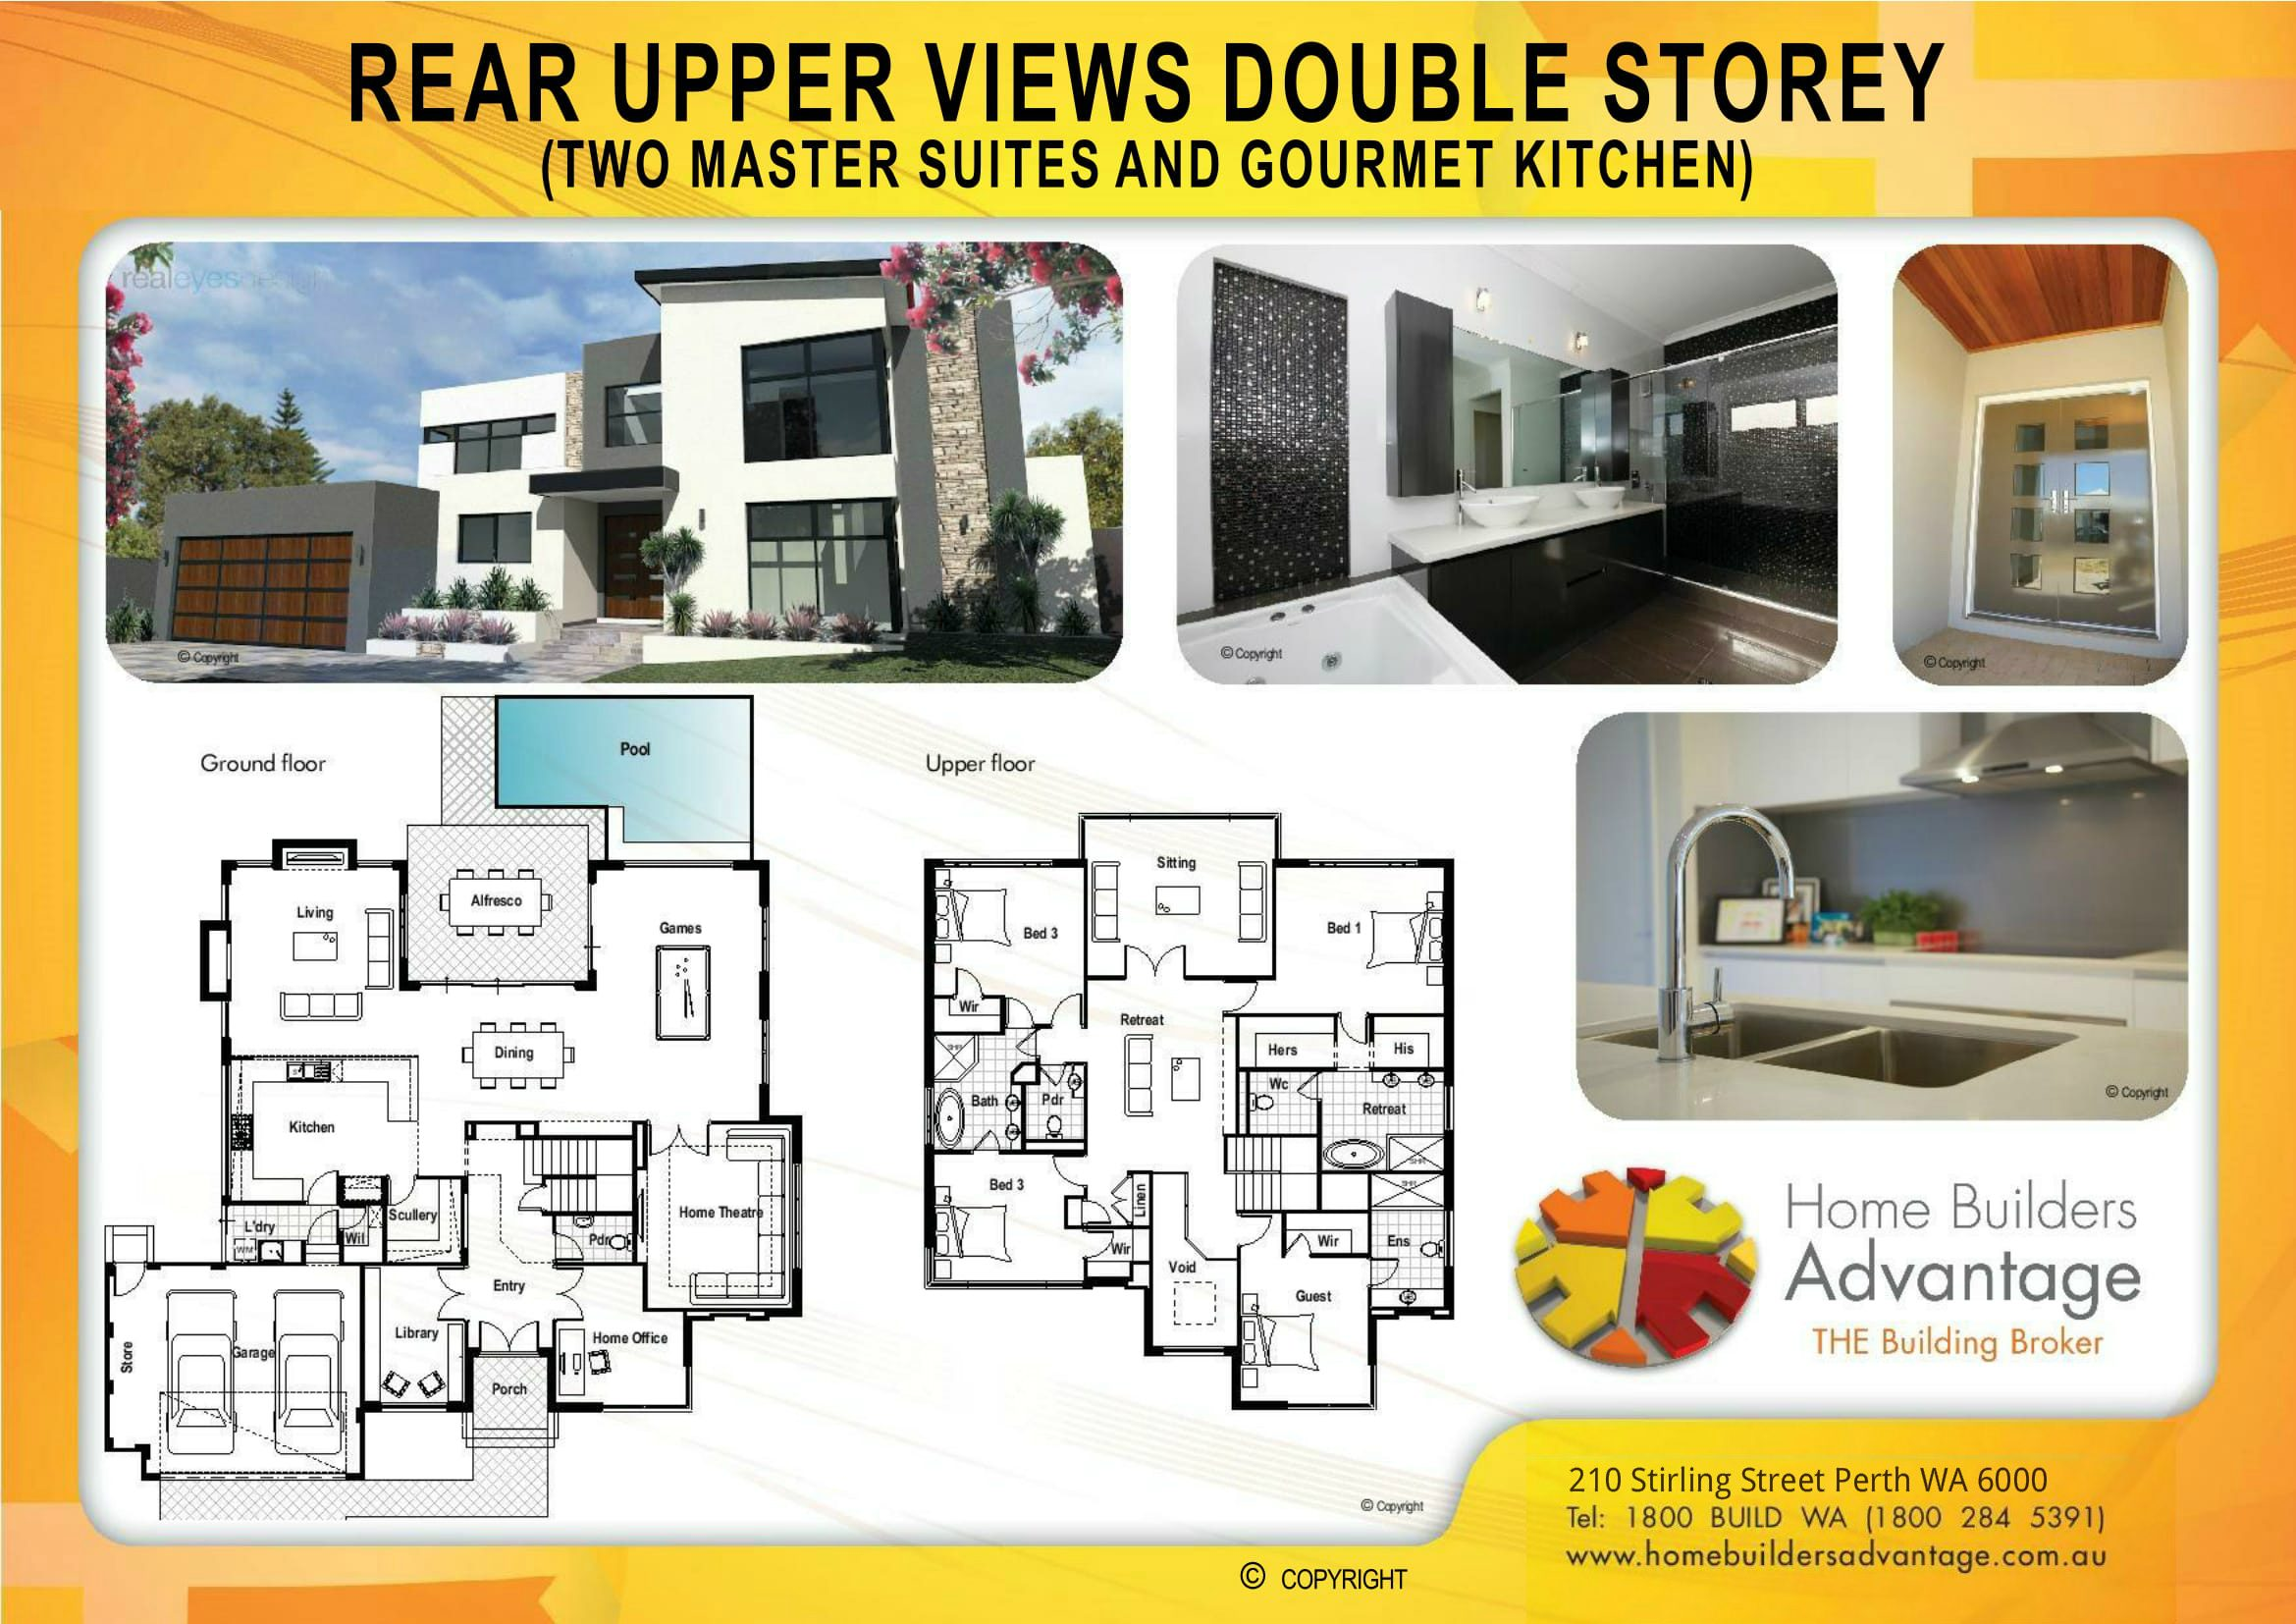 REAR UPPER VIEWS DOUBLE STOREY (TWO MASTER SUITES AND GOURMET KITCHEN) Floor Plan Home Builders Advantage Perth The Building Broker